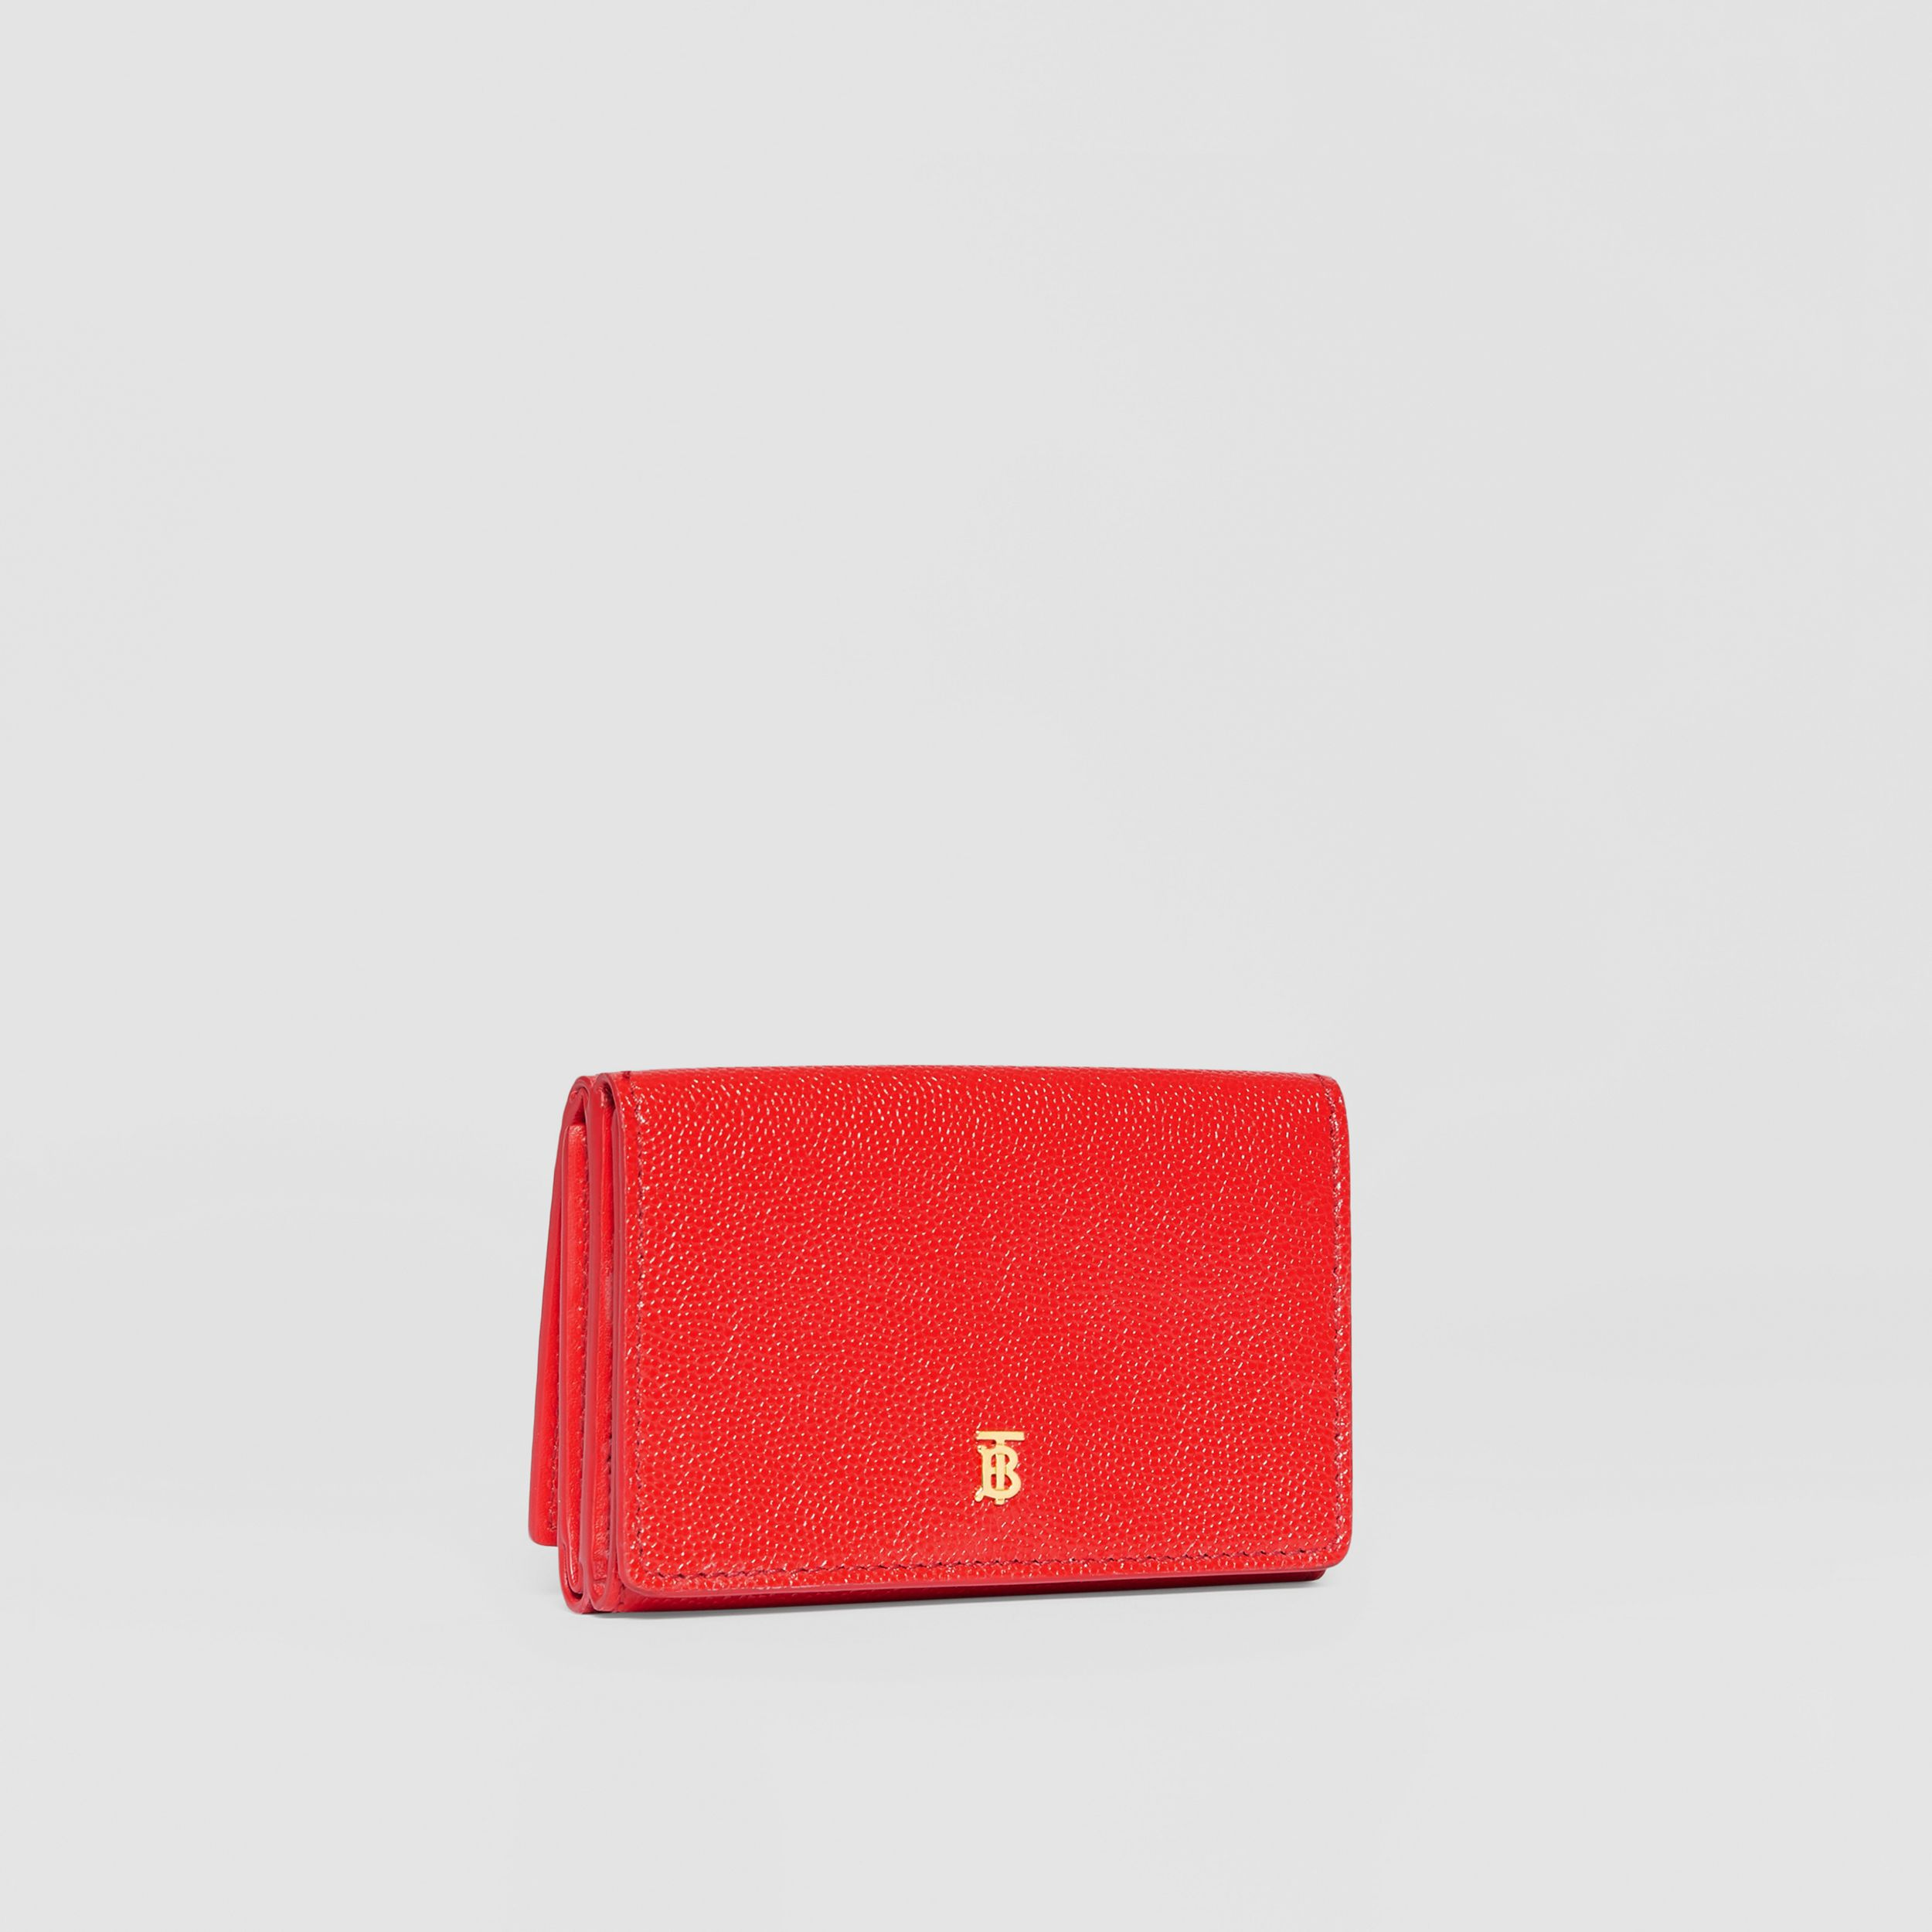 Small Grainy Leather Folding Wallet in Bright Red - Women | Burberry - 4